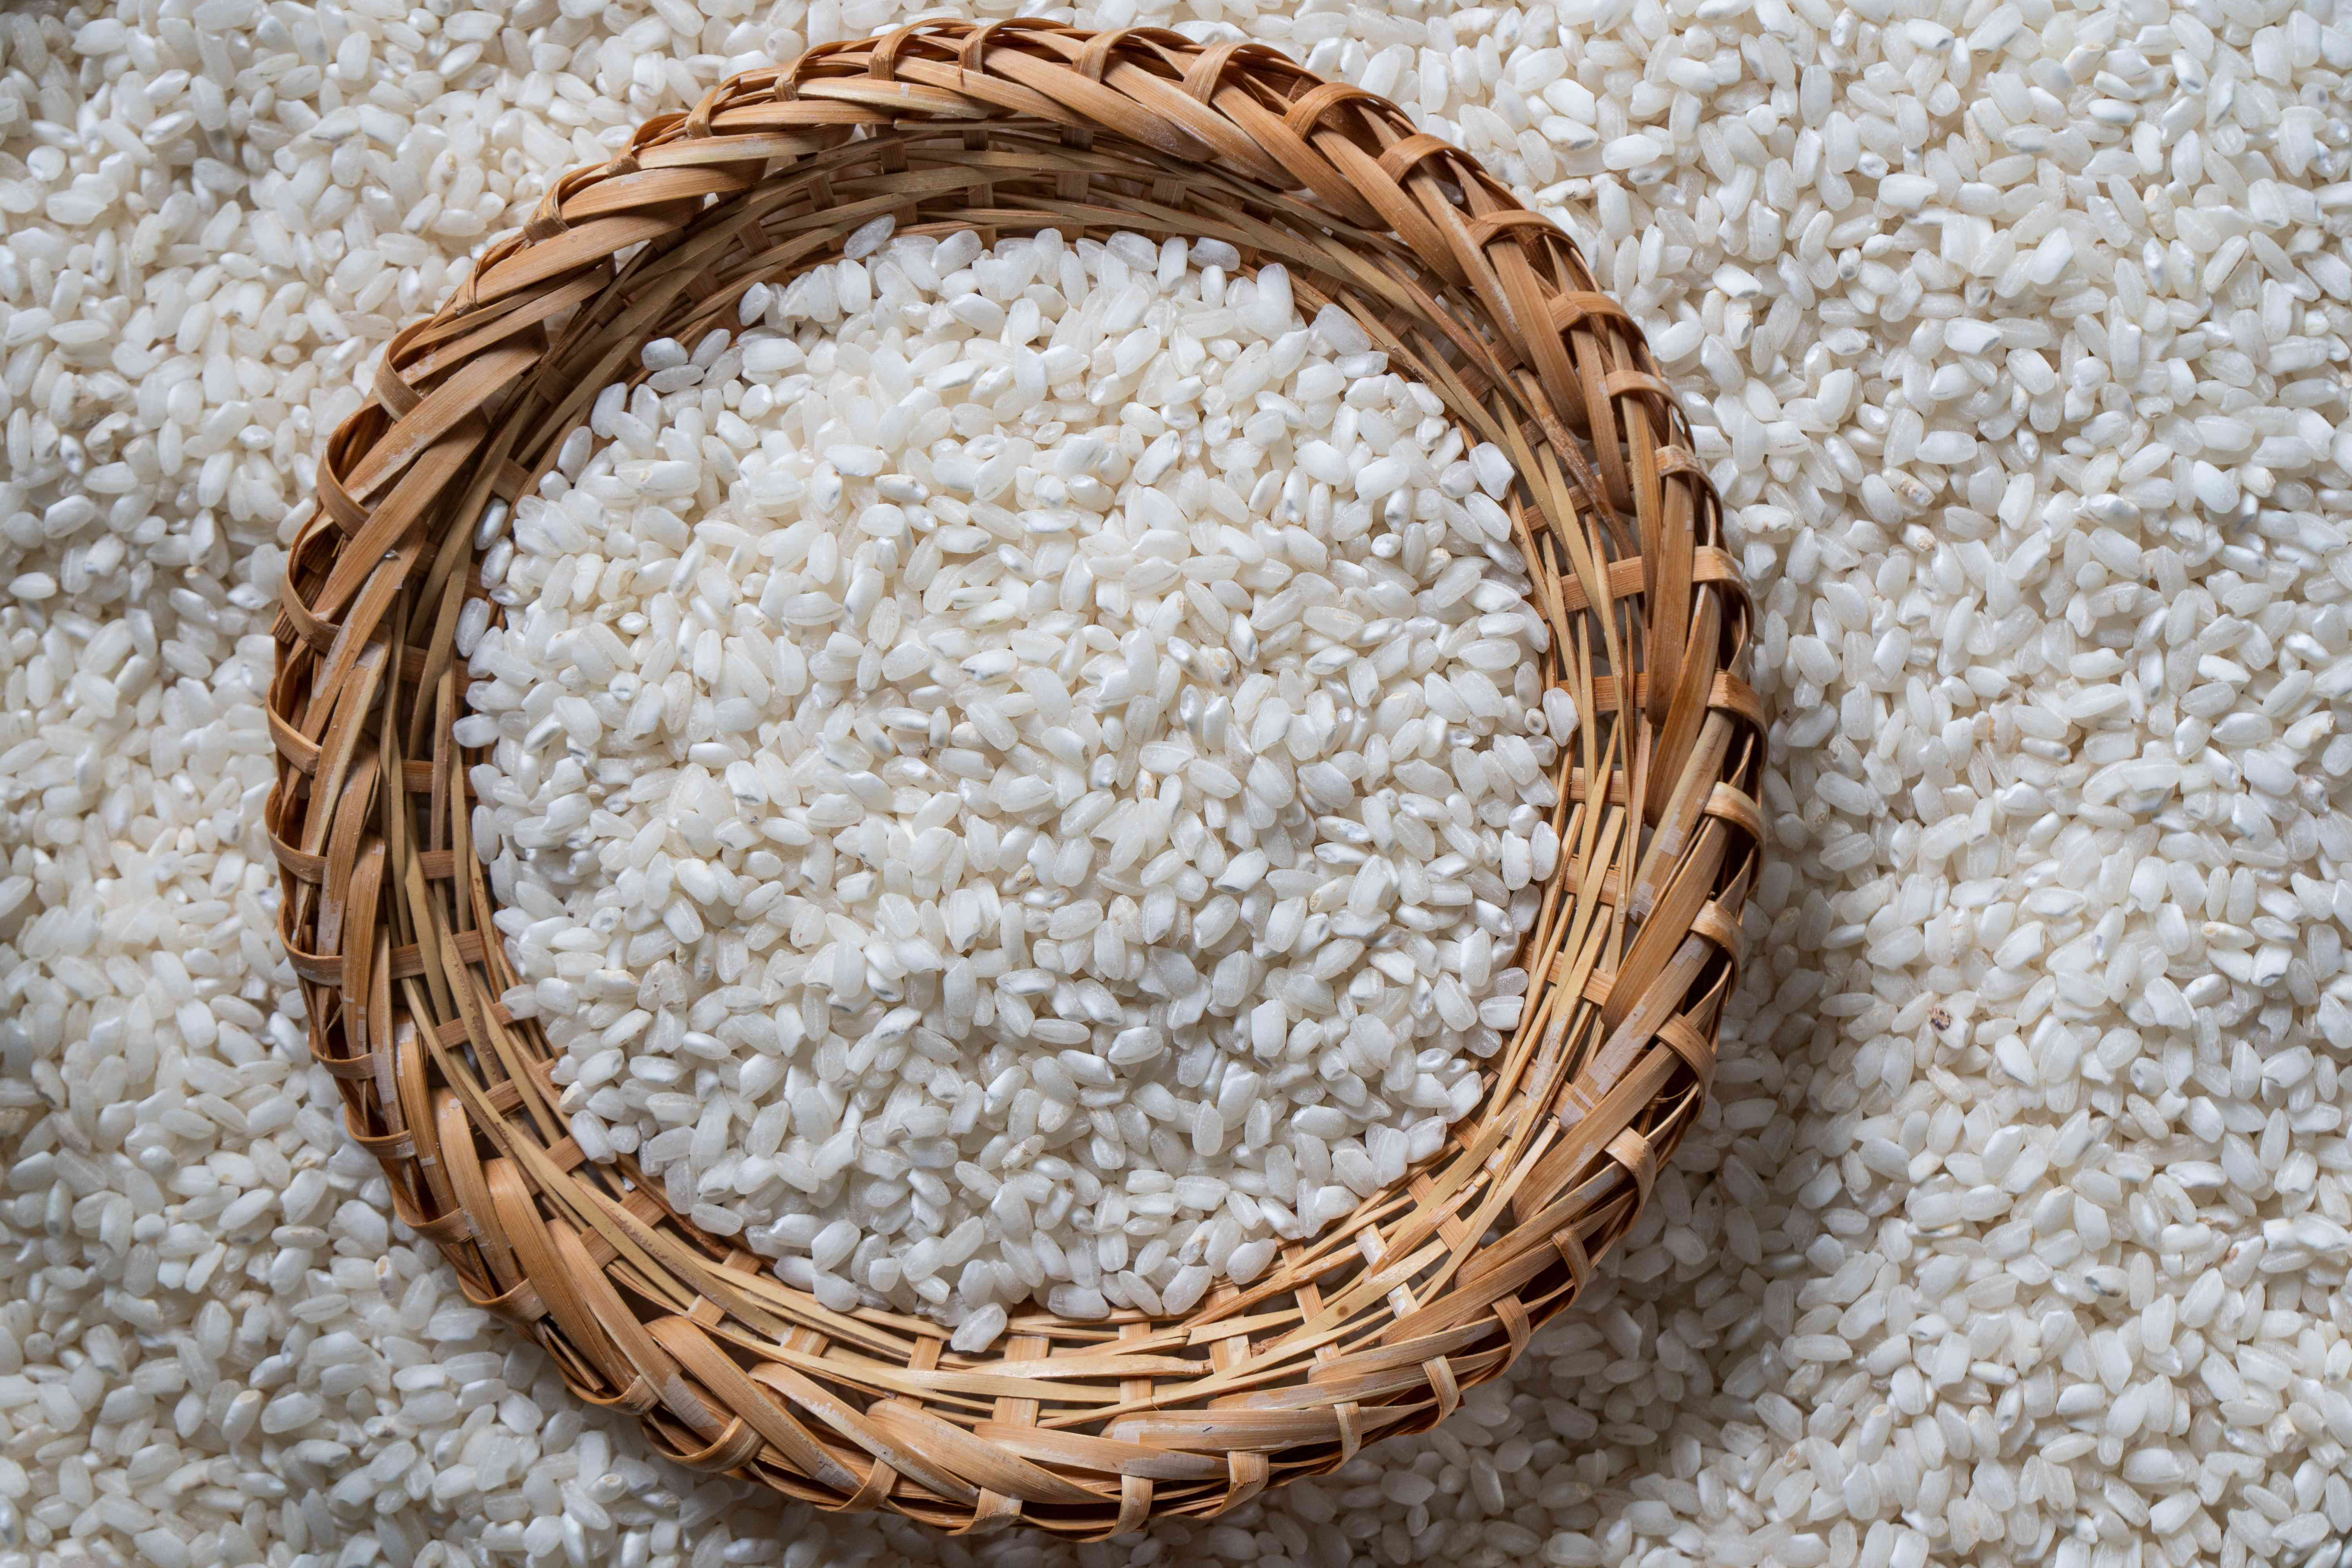 bowl of dried rice made out of basket material